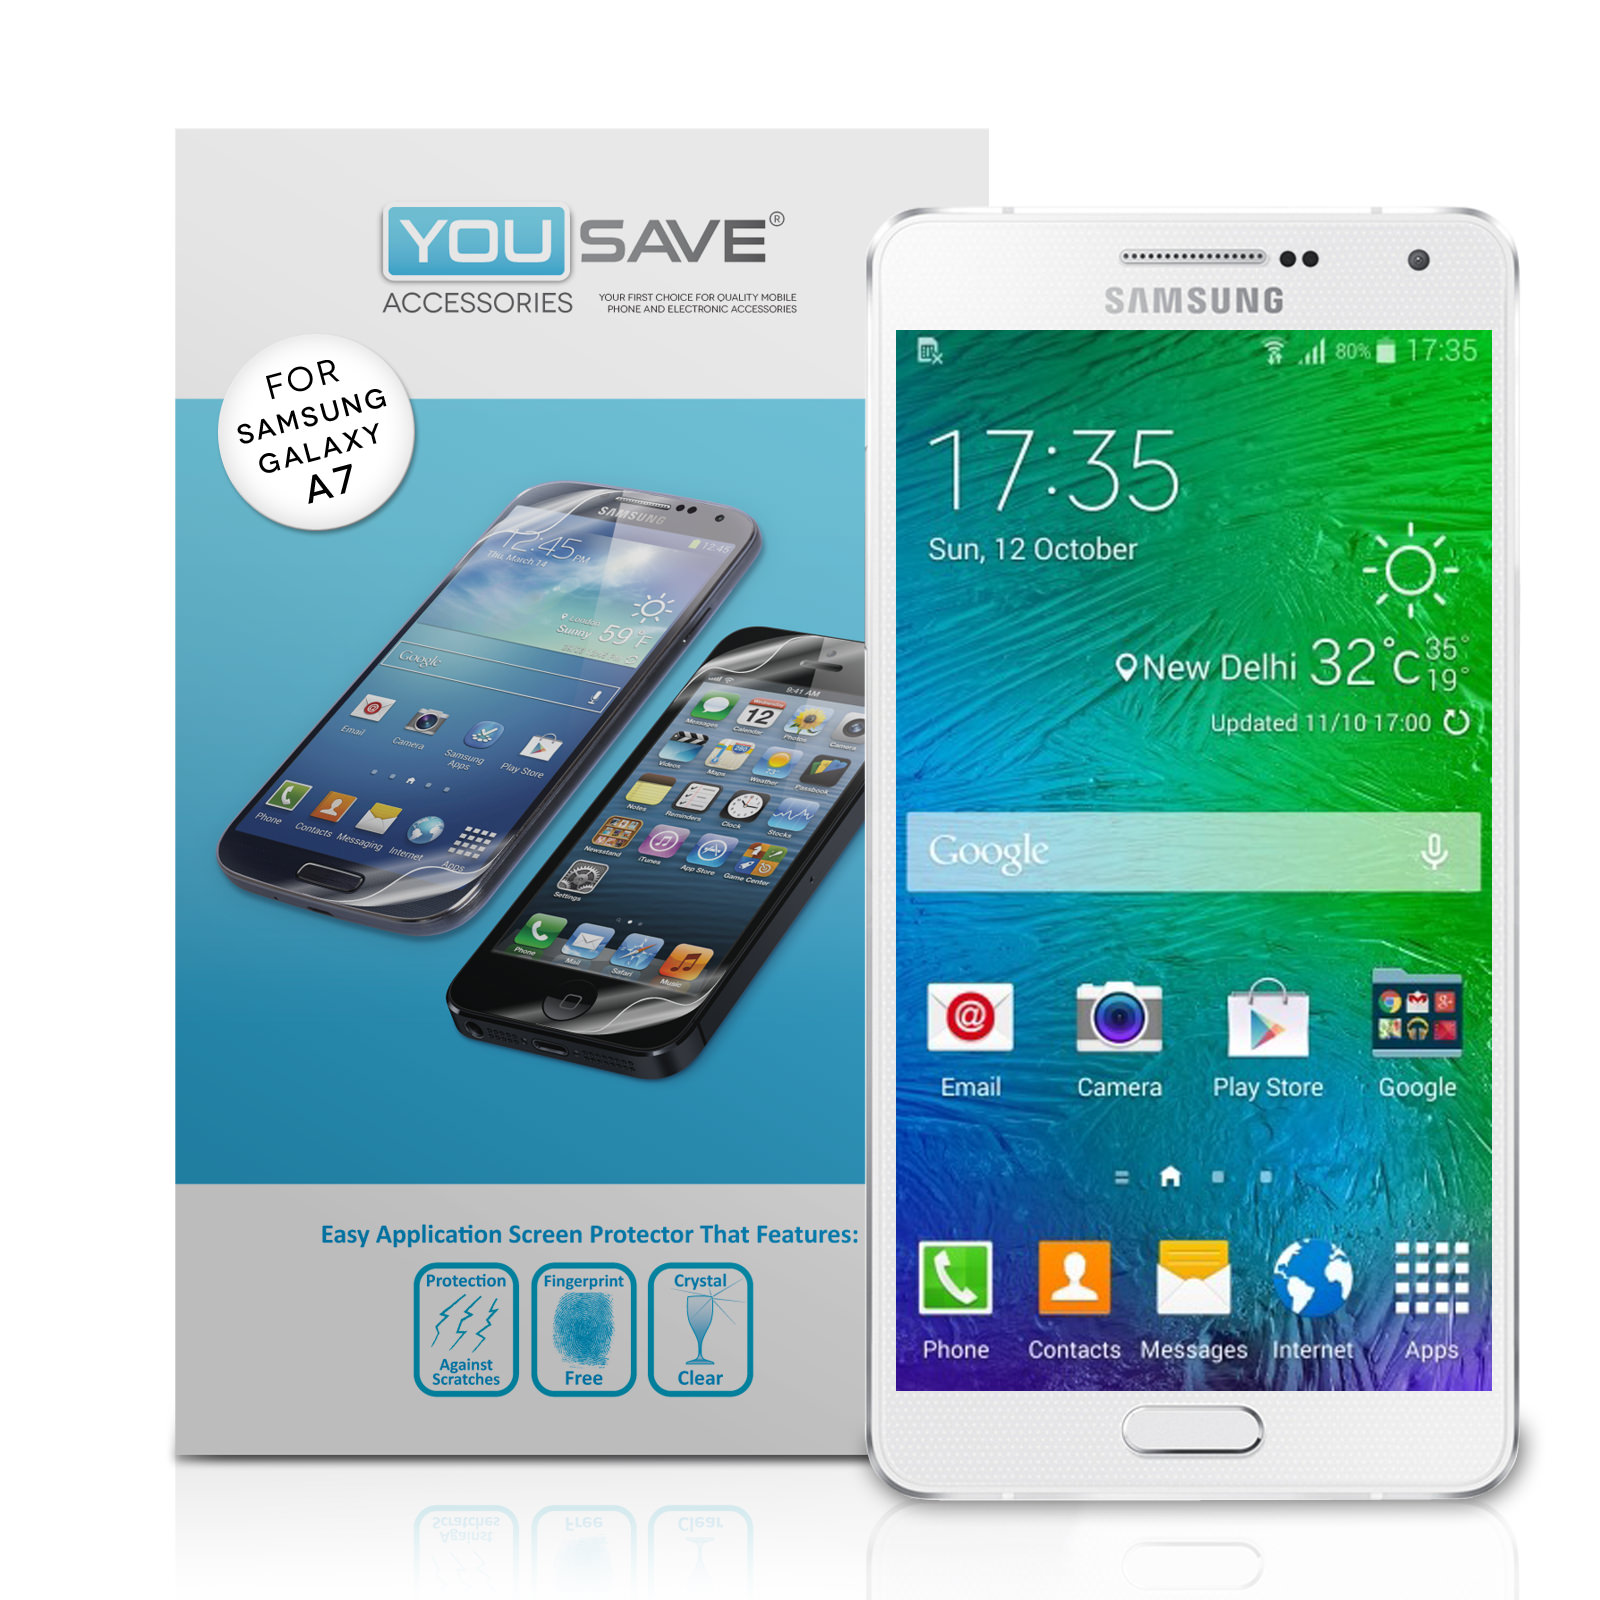 yousave accessories samsung galaxy a7 screen protectors x3. Black Bedroom Furniture Sets. Home Design Ideas